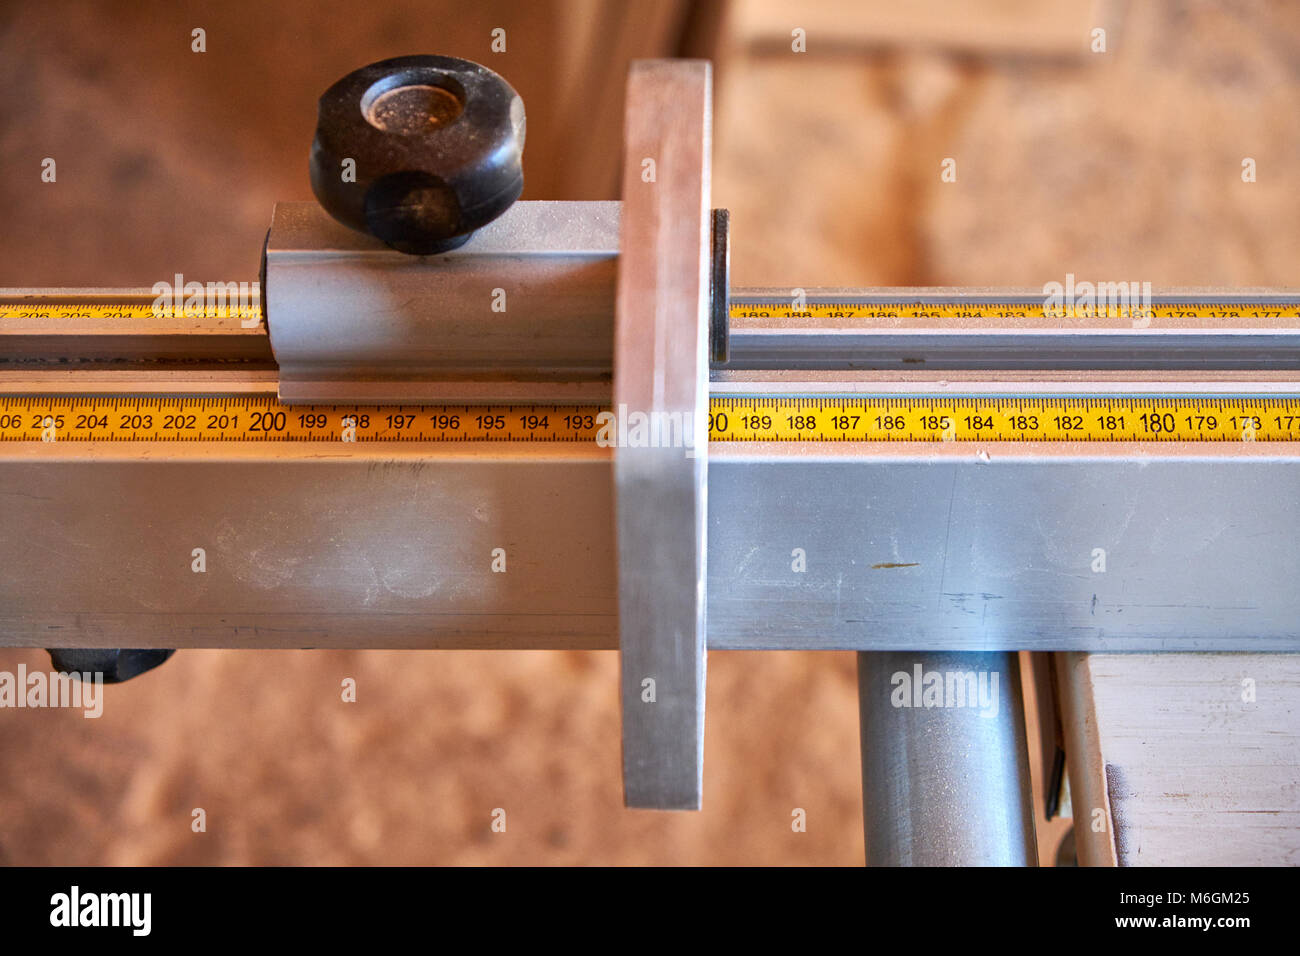 Measuring scale with a stopper on the panel squaring saw - Stock Image